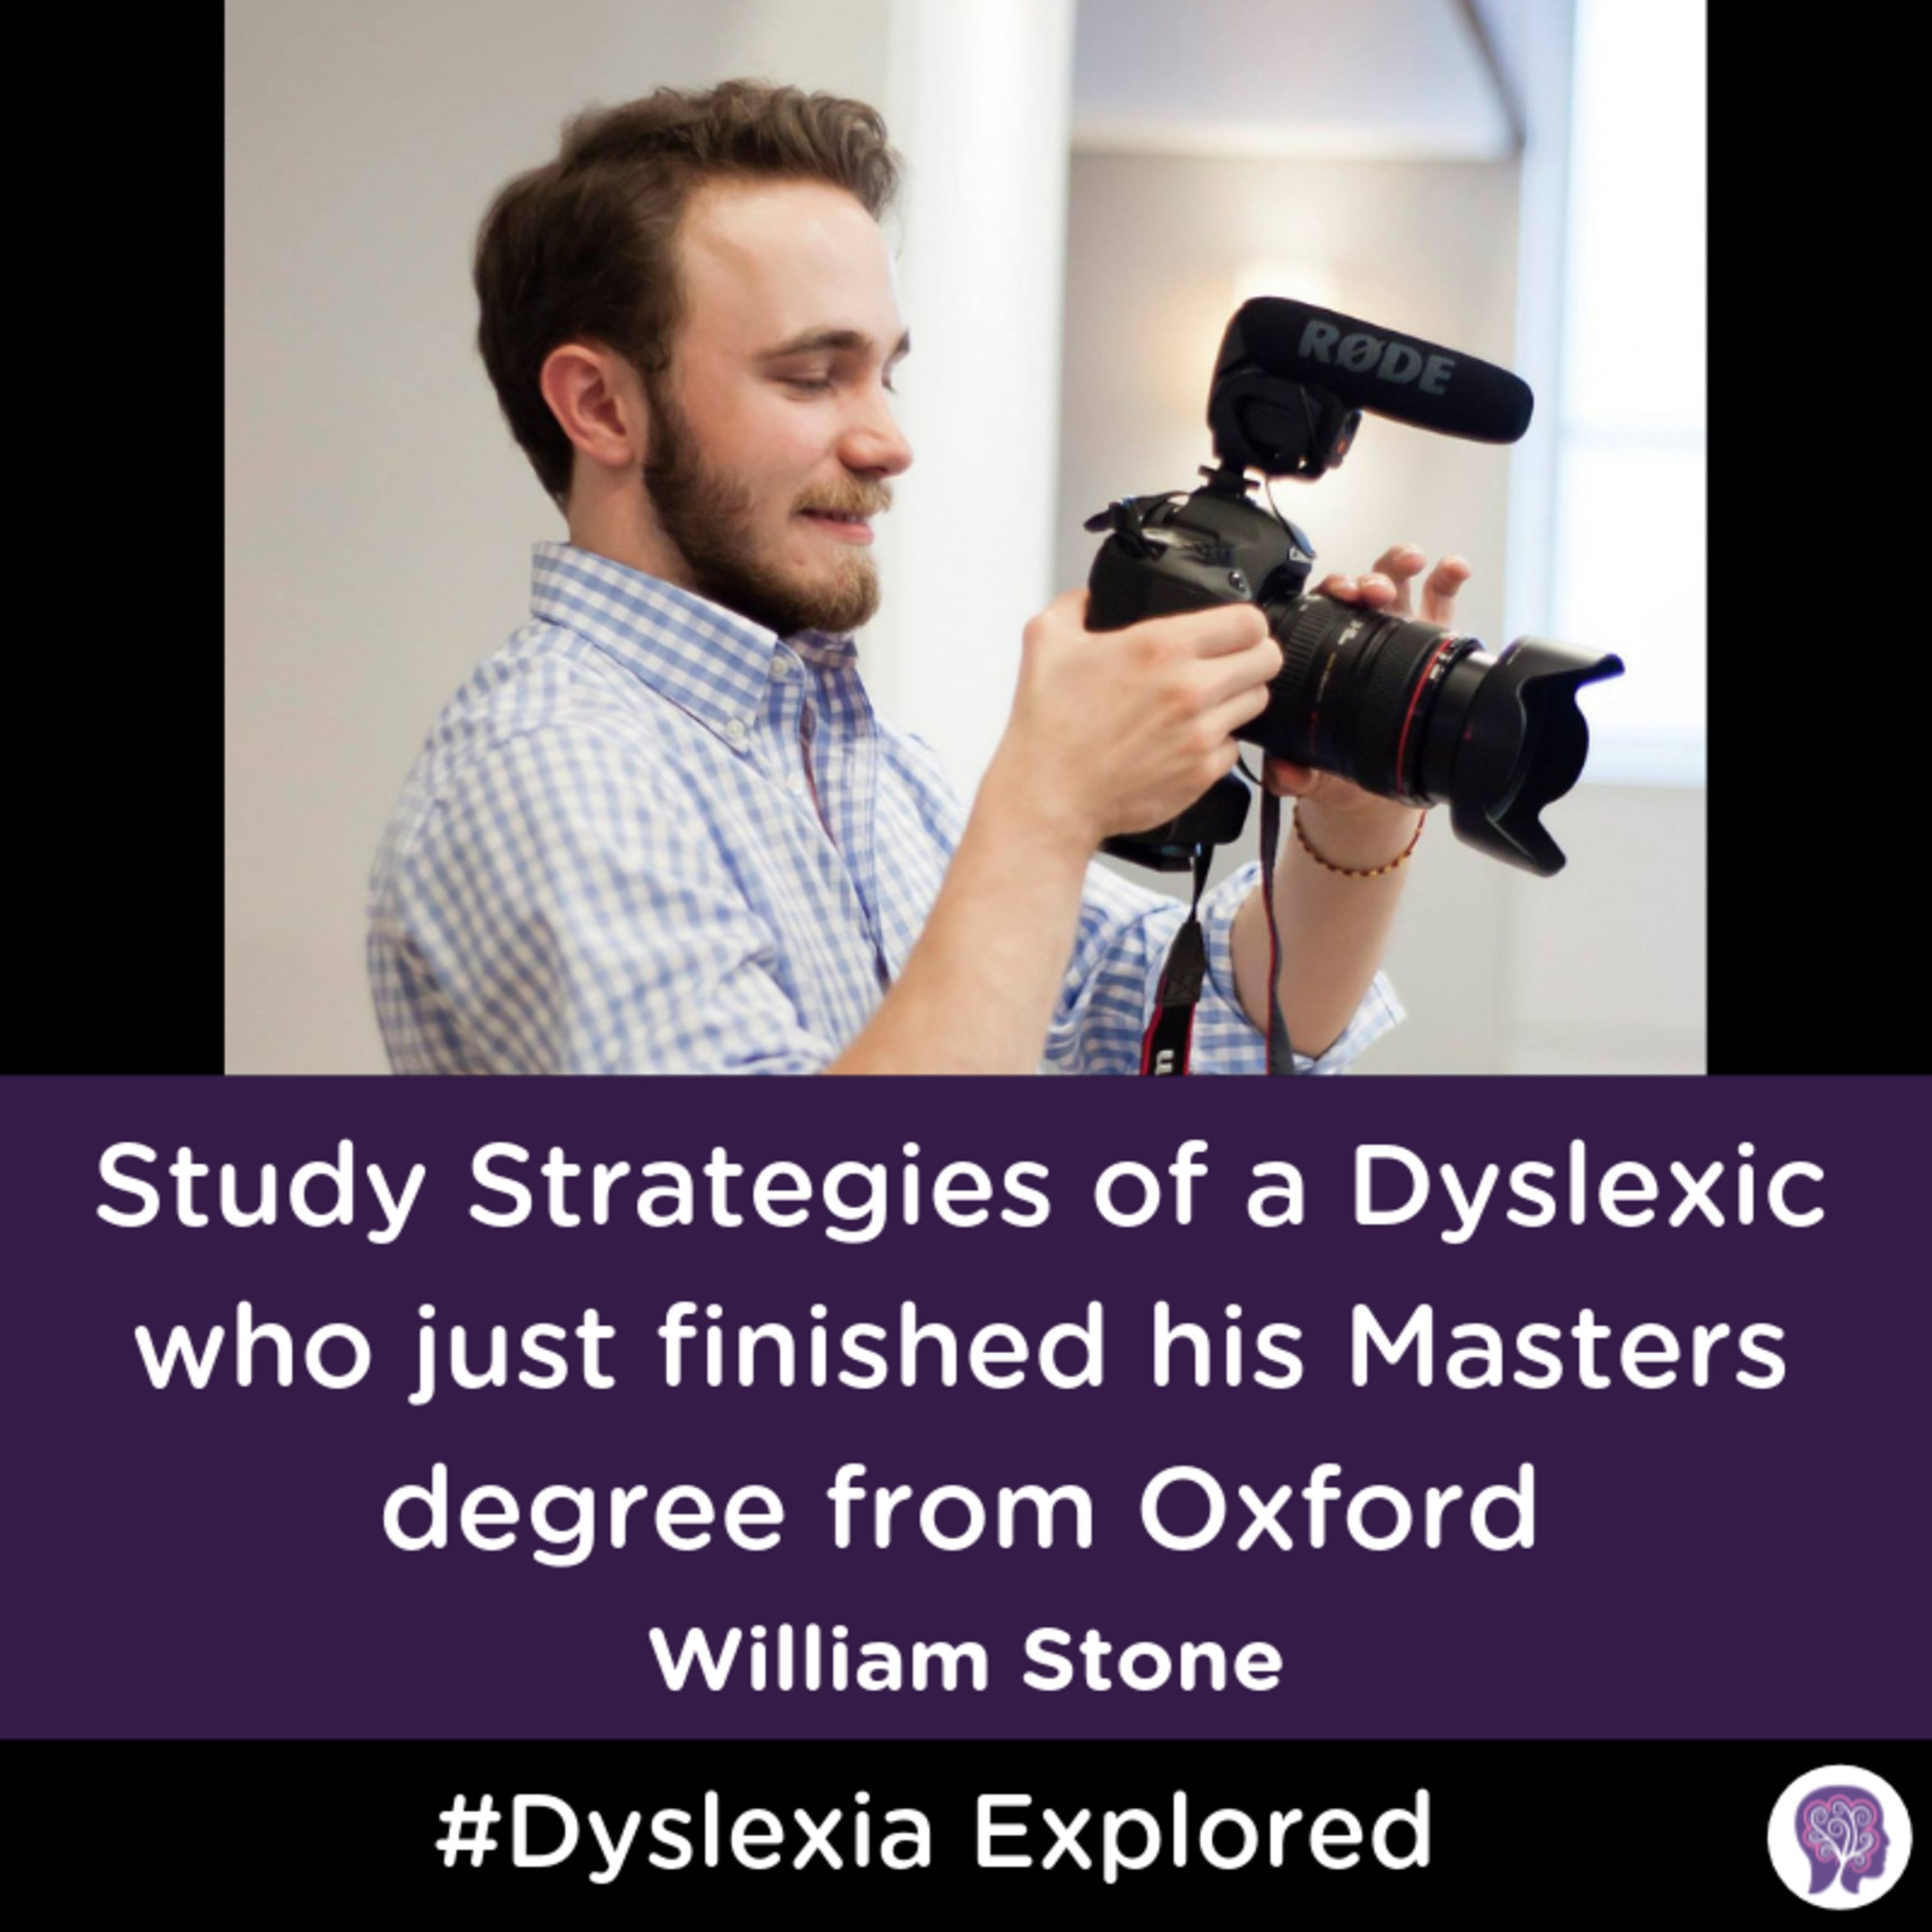 #37 Study Strategies of a Dyslexic who just finished his Masters degree from Oxford. William Stone